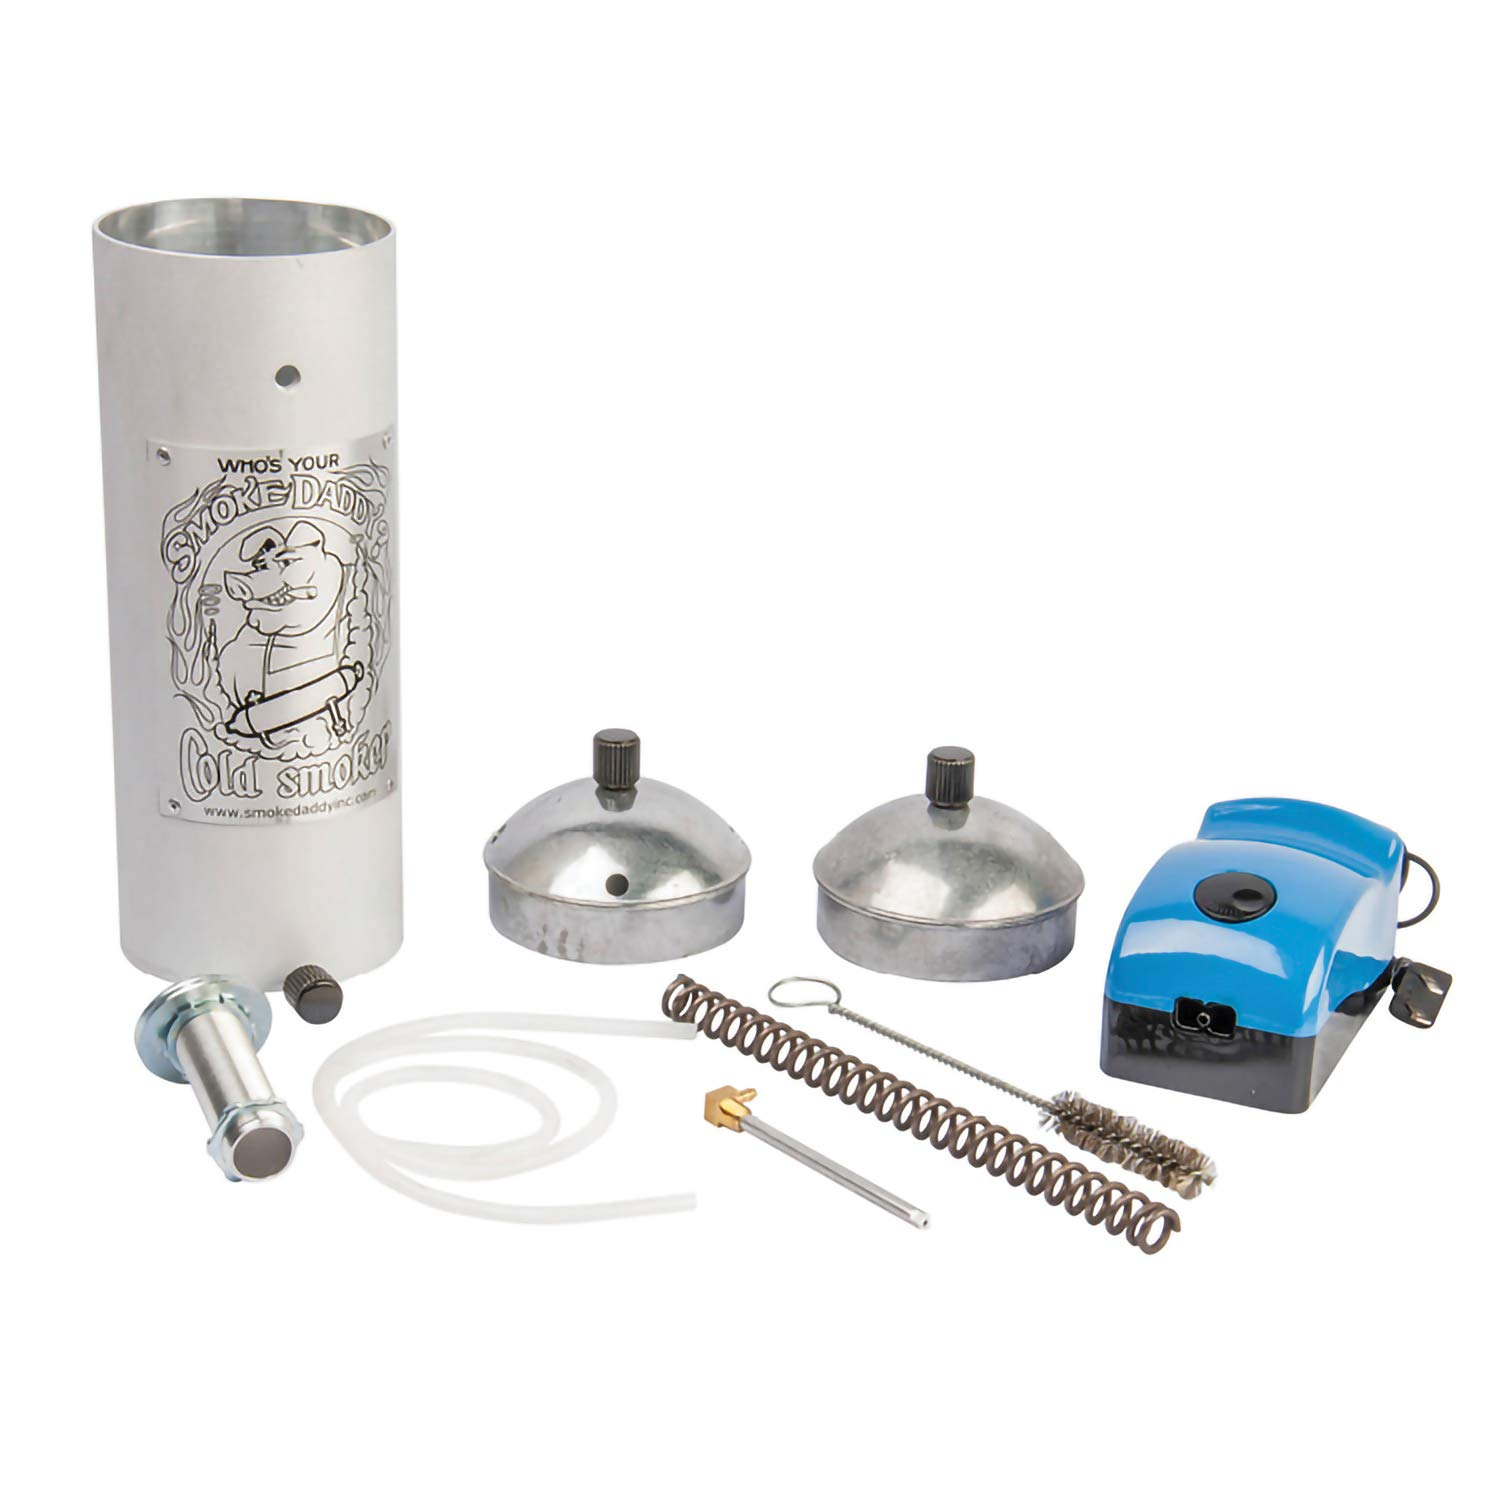 Smoke Daddy 8 Inch Cold Smoke Generator Uses Your Choice of Fuels by Smoke Daddy Inc.